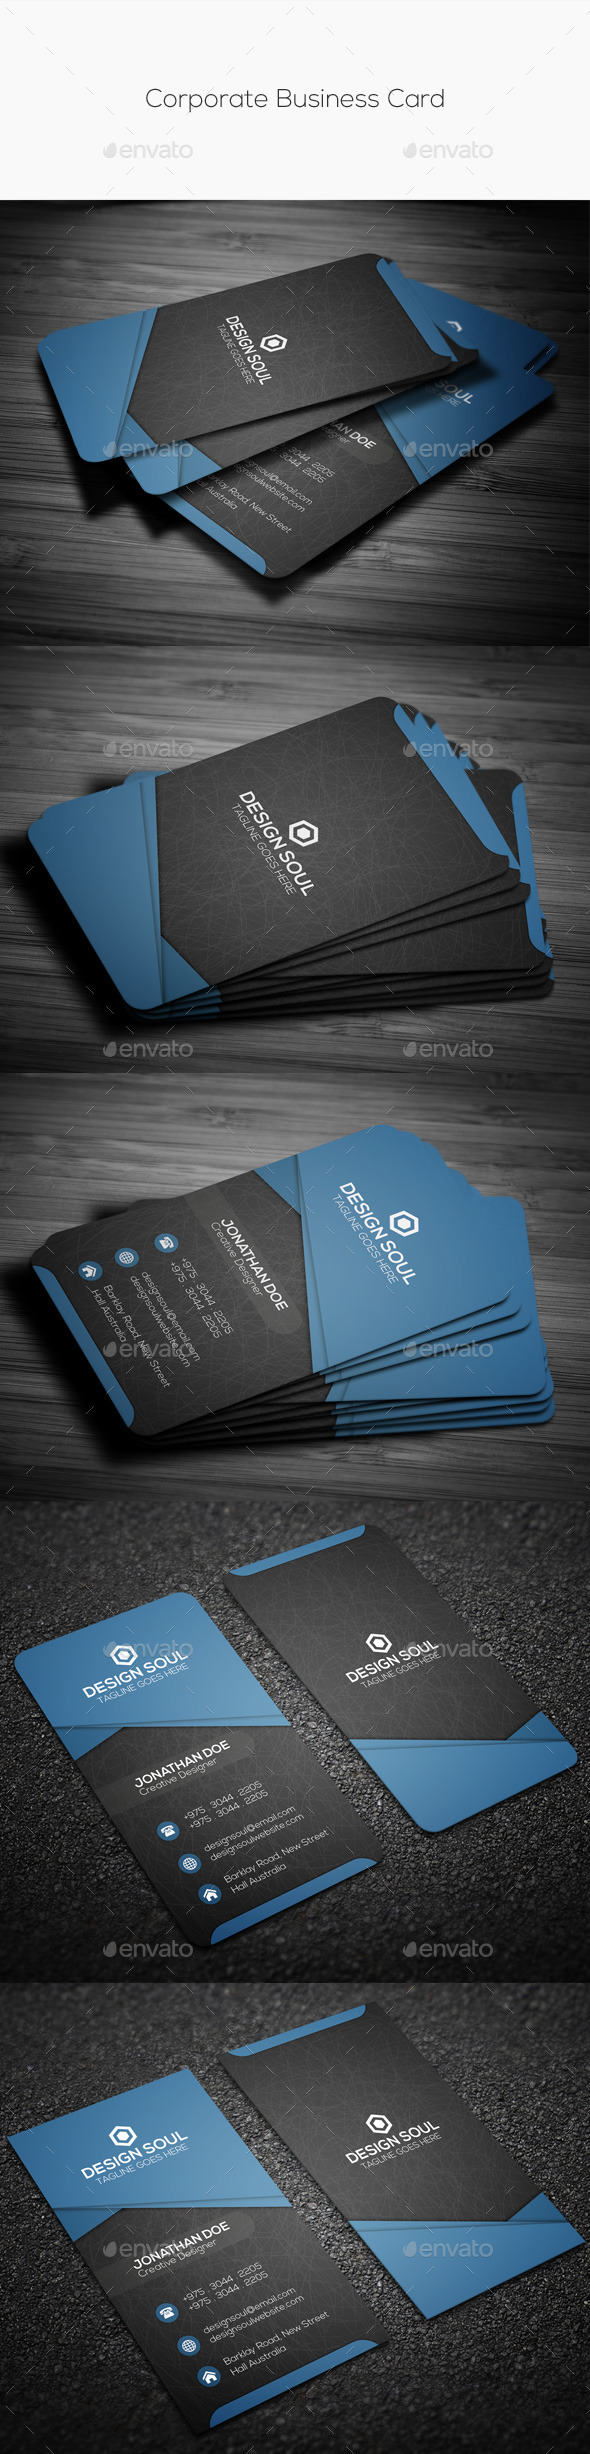 GraphicRiver Corporate Business Card 10427544